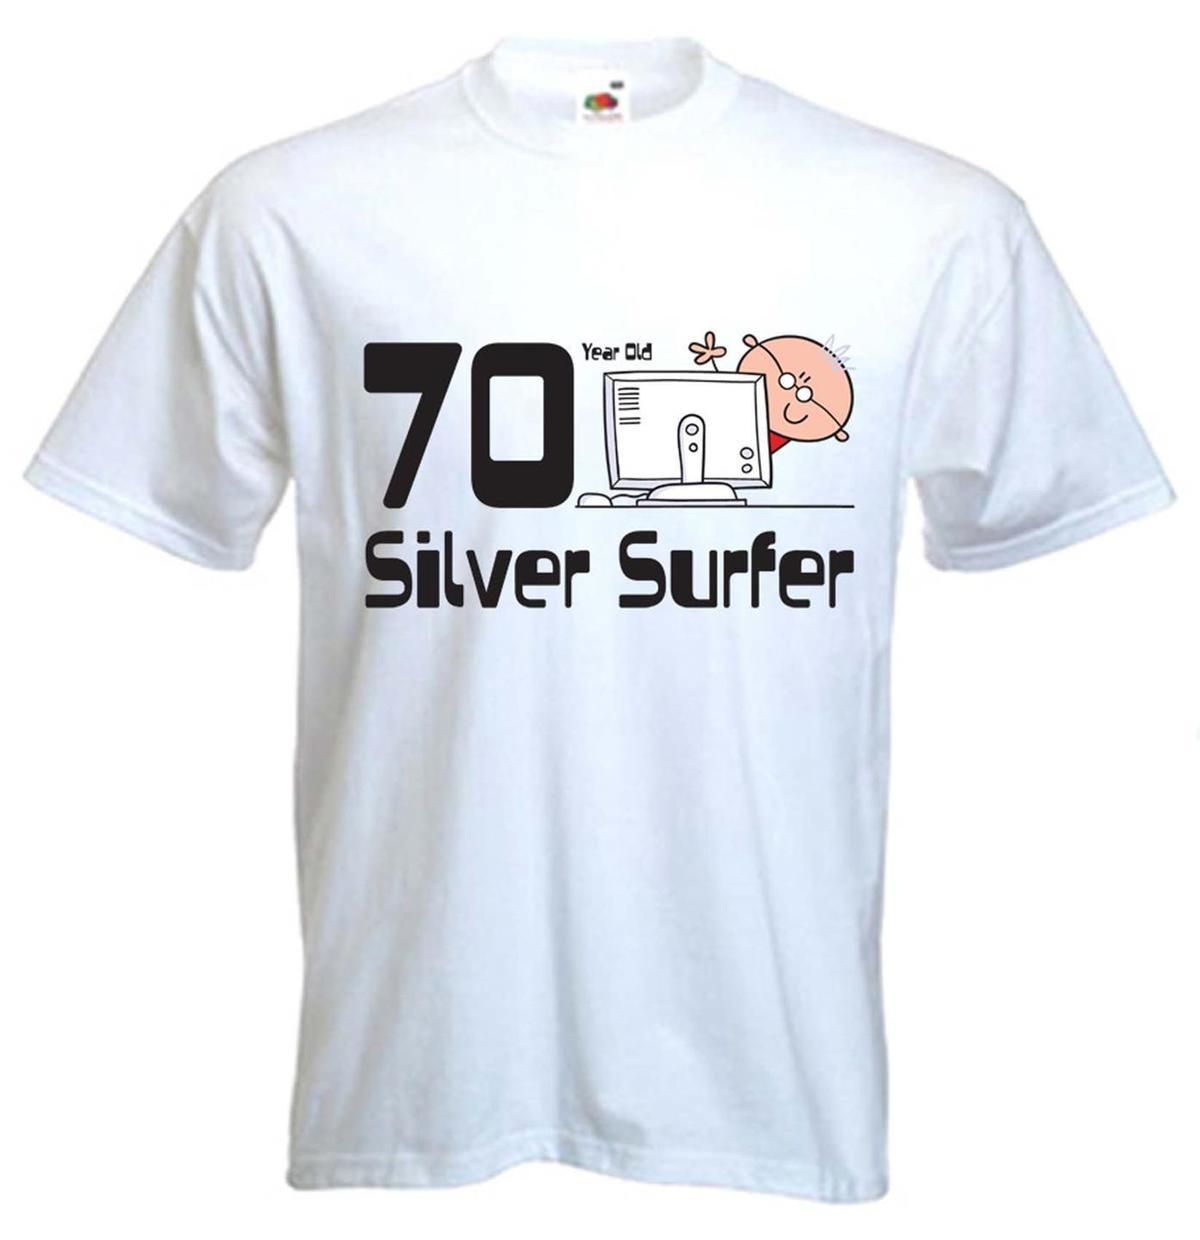 SILVER SURFER 70TH BIRTHDAY T SHIRT Gift Present Sizes Small To Hot Selling 100 Cotton Tee Shirts Top Funny For Guys Fashion From